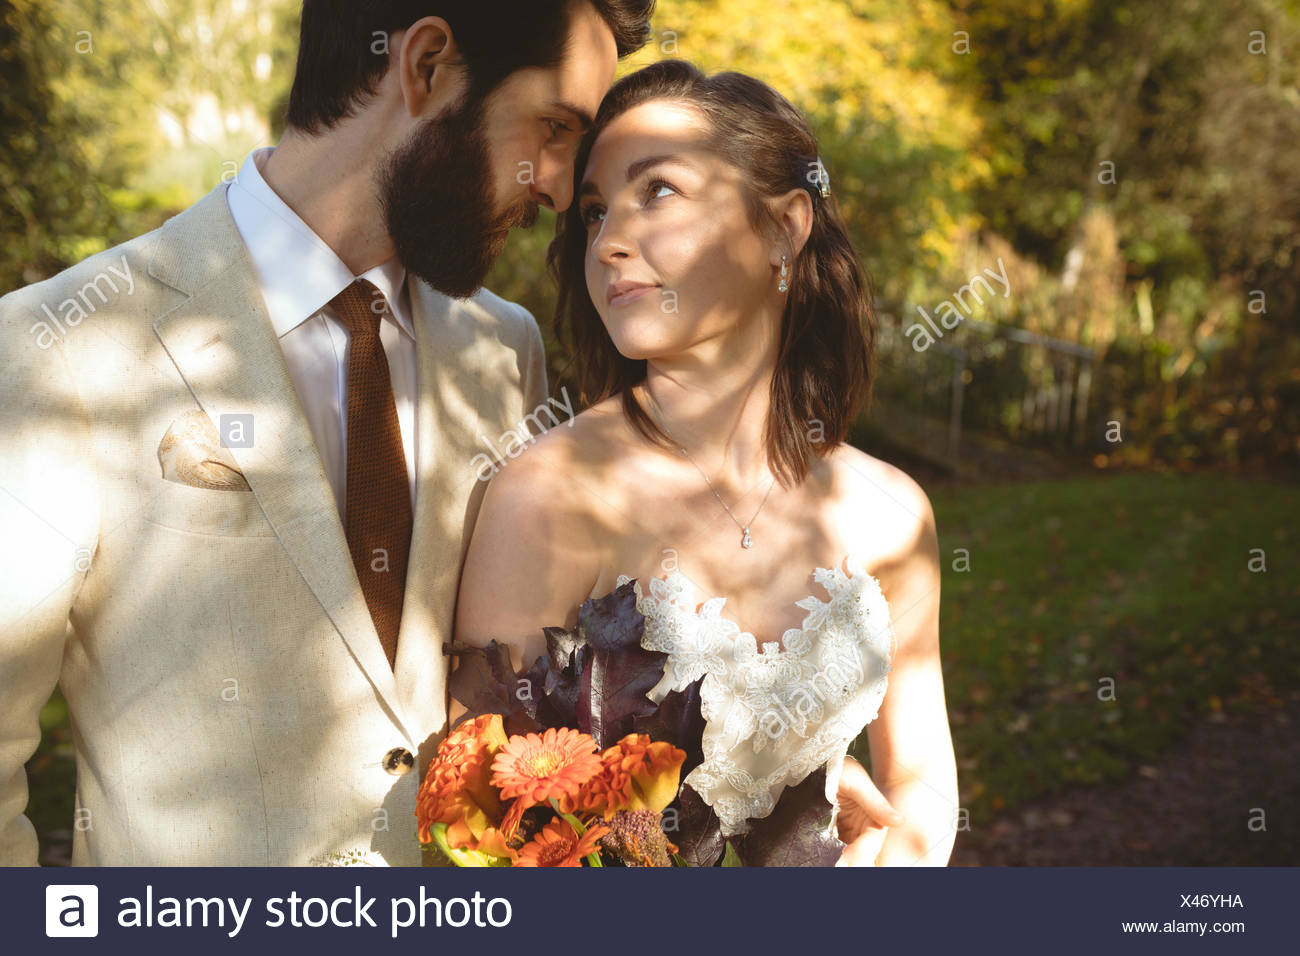 Romantic bride and groom looking into each others eyes - Stock Image